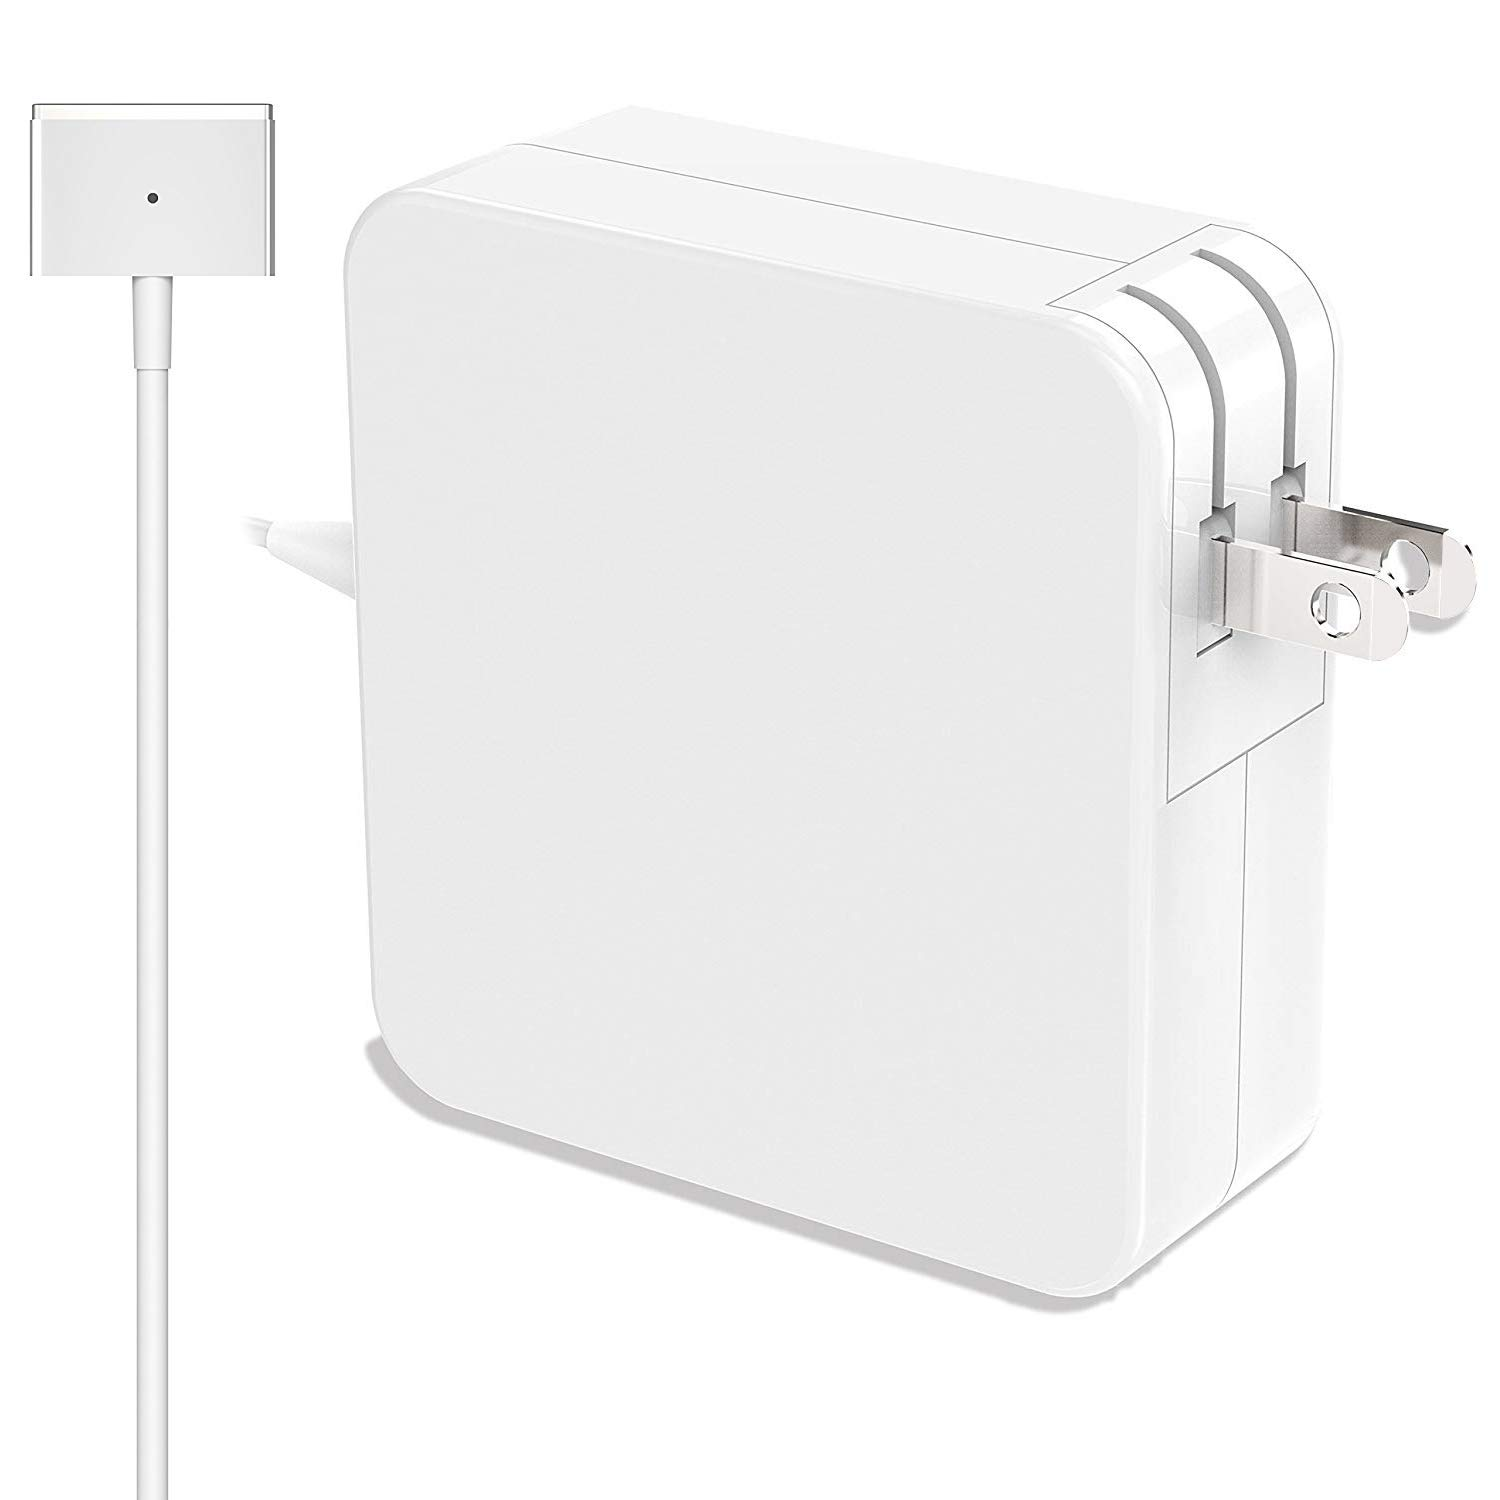 Mac Book Pro Charger,Sngg 60W Magsafe 2 T-Tip Adapter Charger Compatible Mac Book Pro 13inch Retina Display (Late 2012 & After Model)